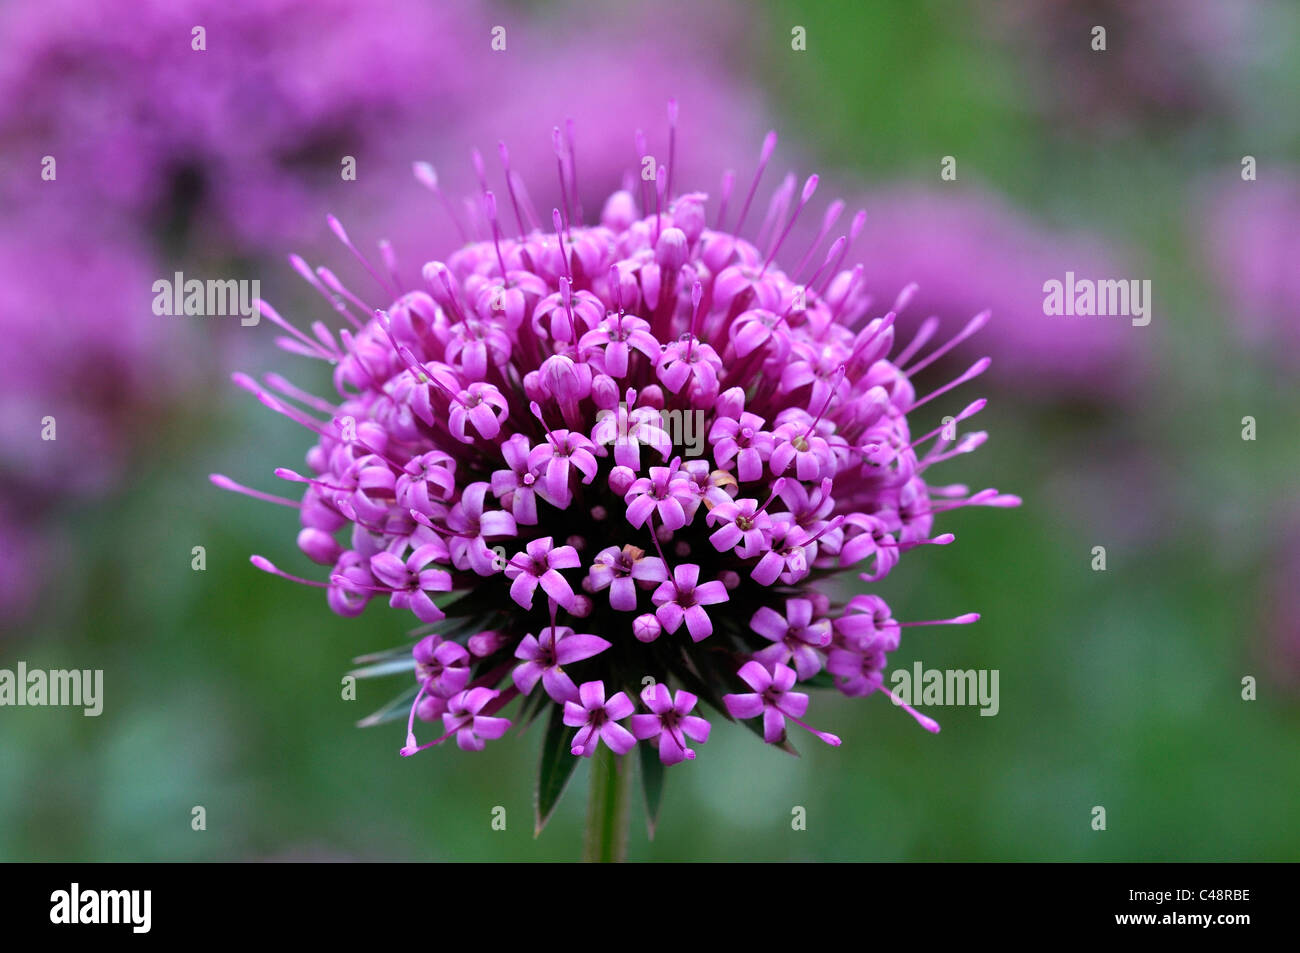 the purple flower head of phuopsis stylosa a perennial. Black Bedroom Furniture Sets. Home Design Ideas